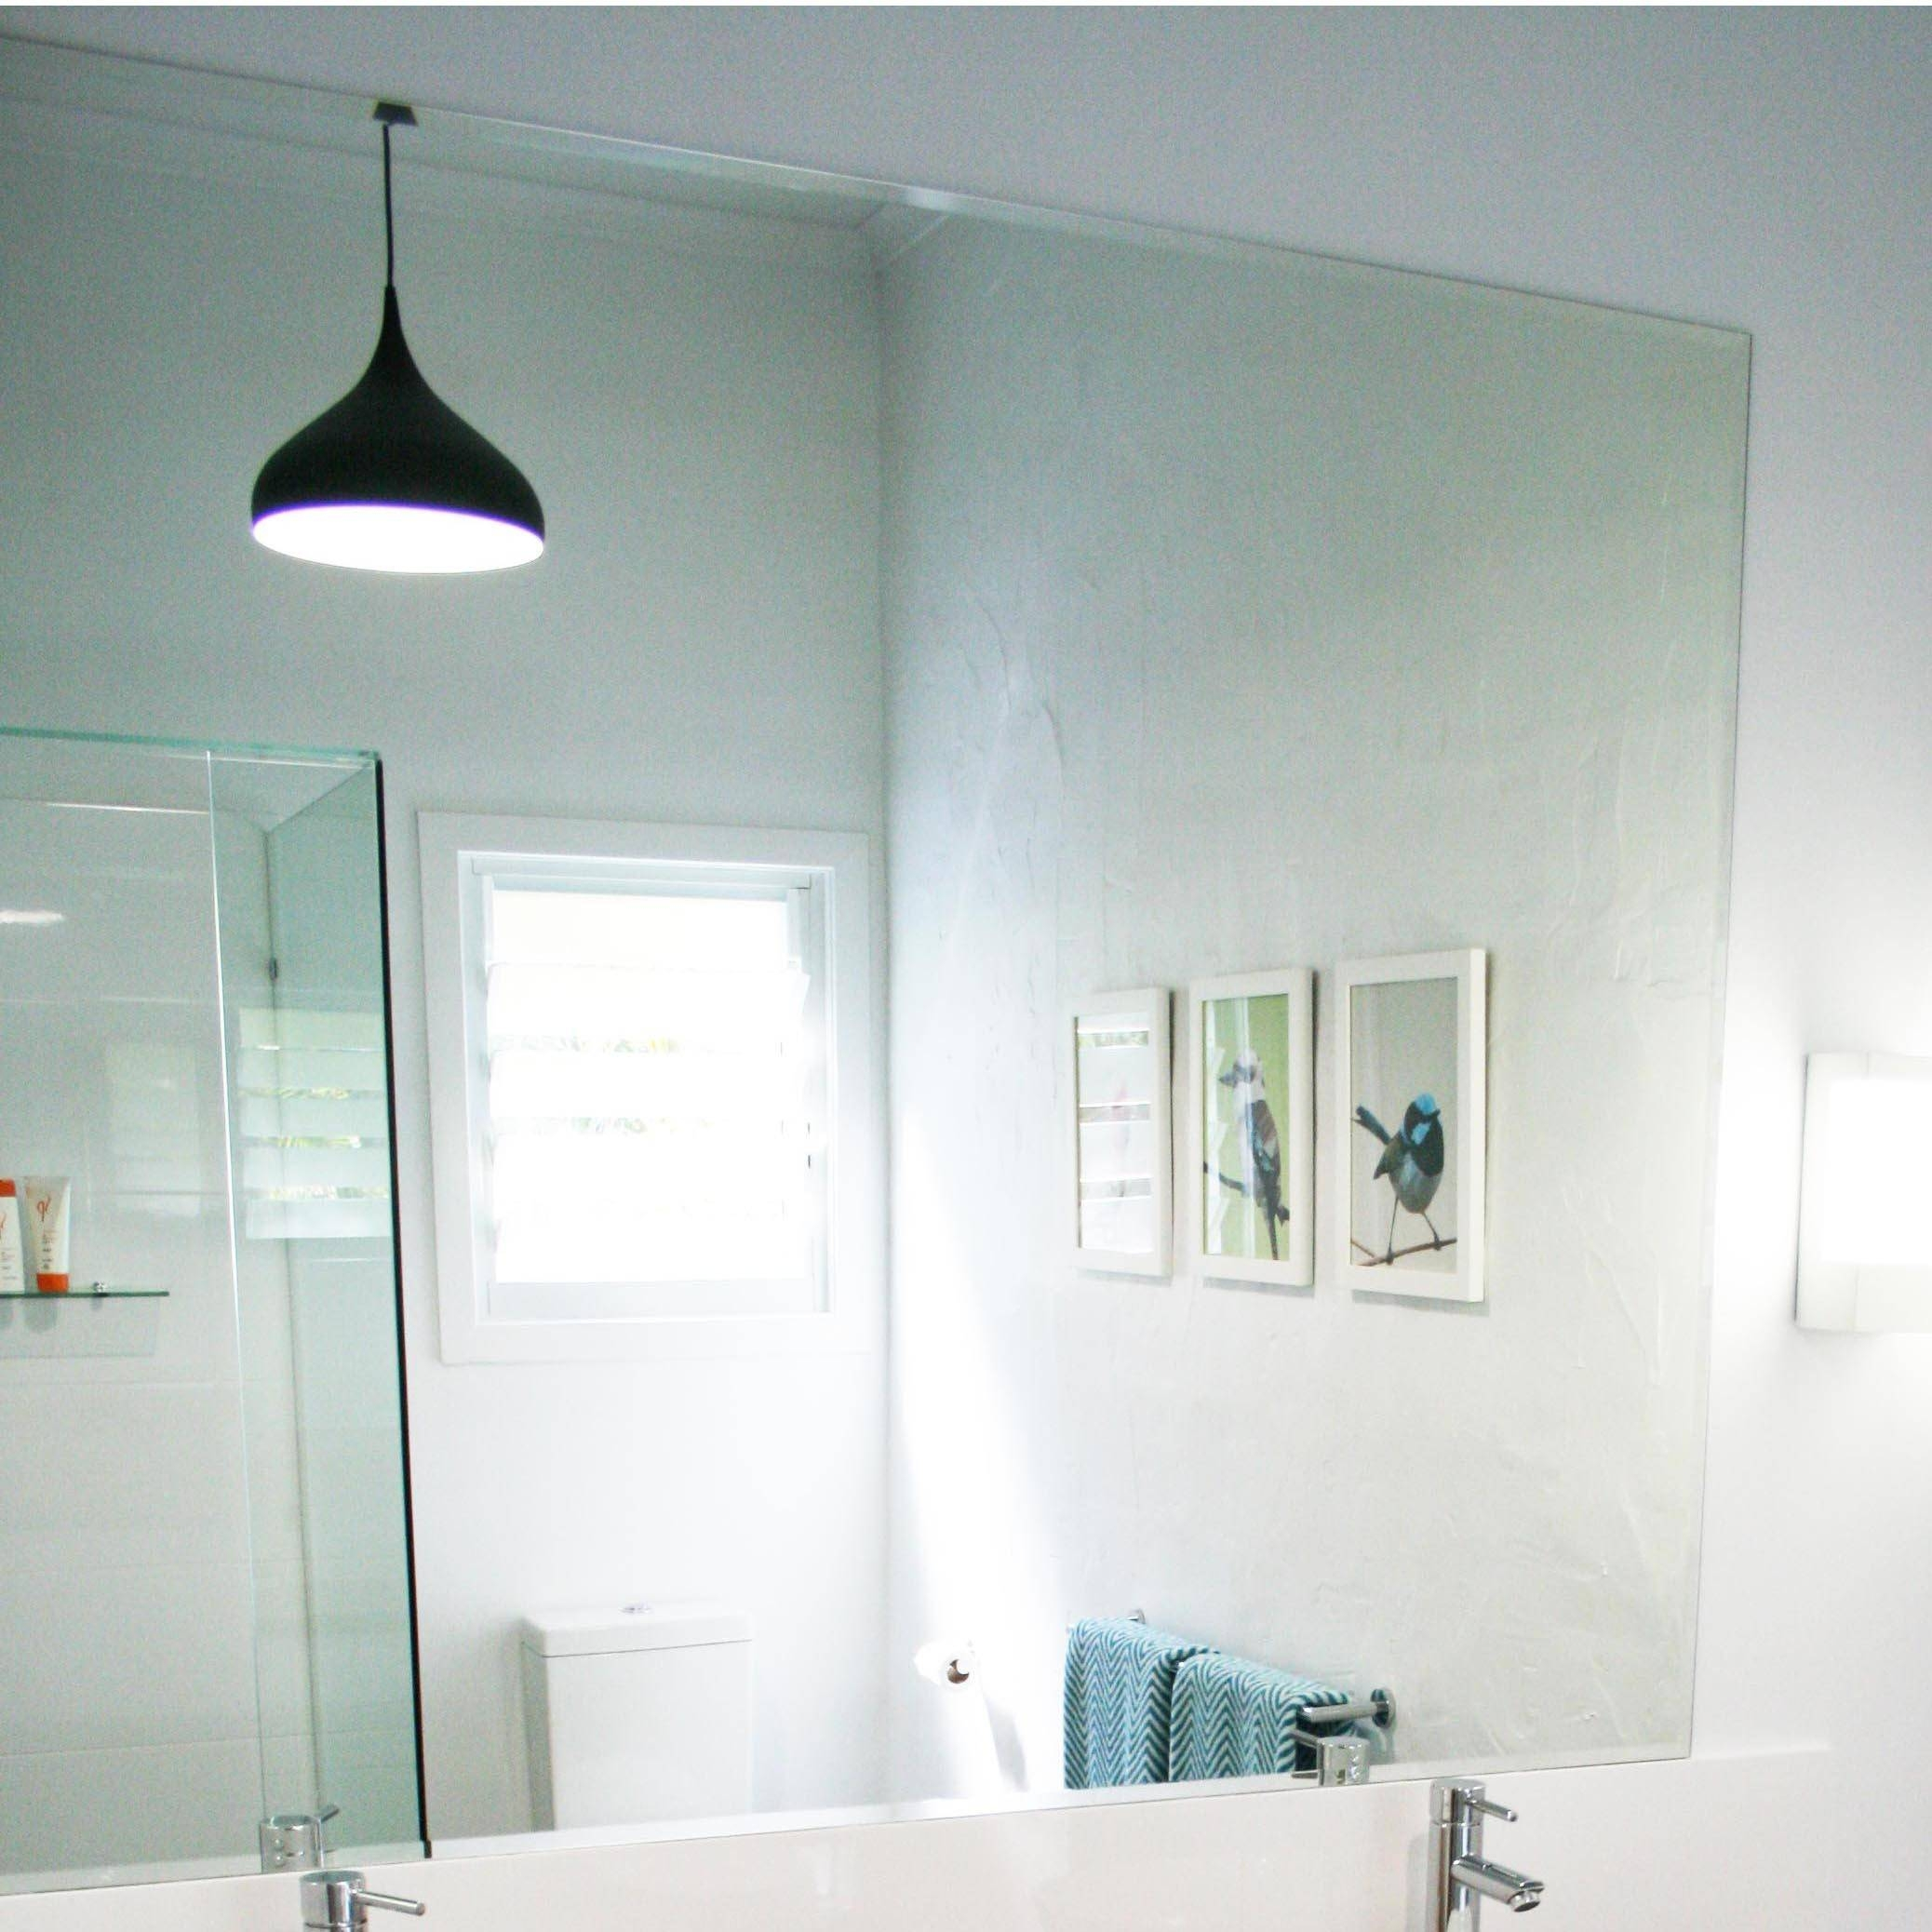 Reflekta Bevelled Edge Mirror 1500X1200Mm | Highgrove Bathrooms for Bevelled Edge Mirrors (Image 15 of 15)